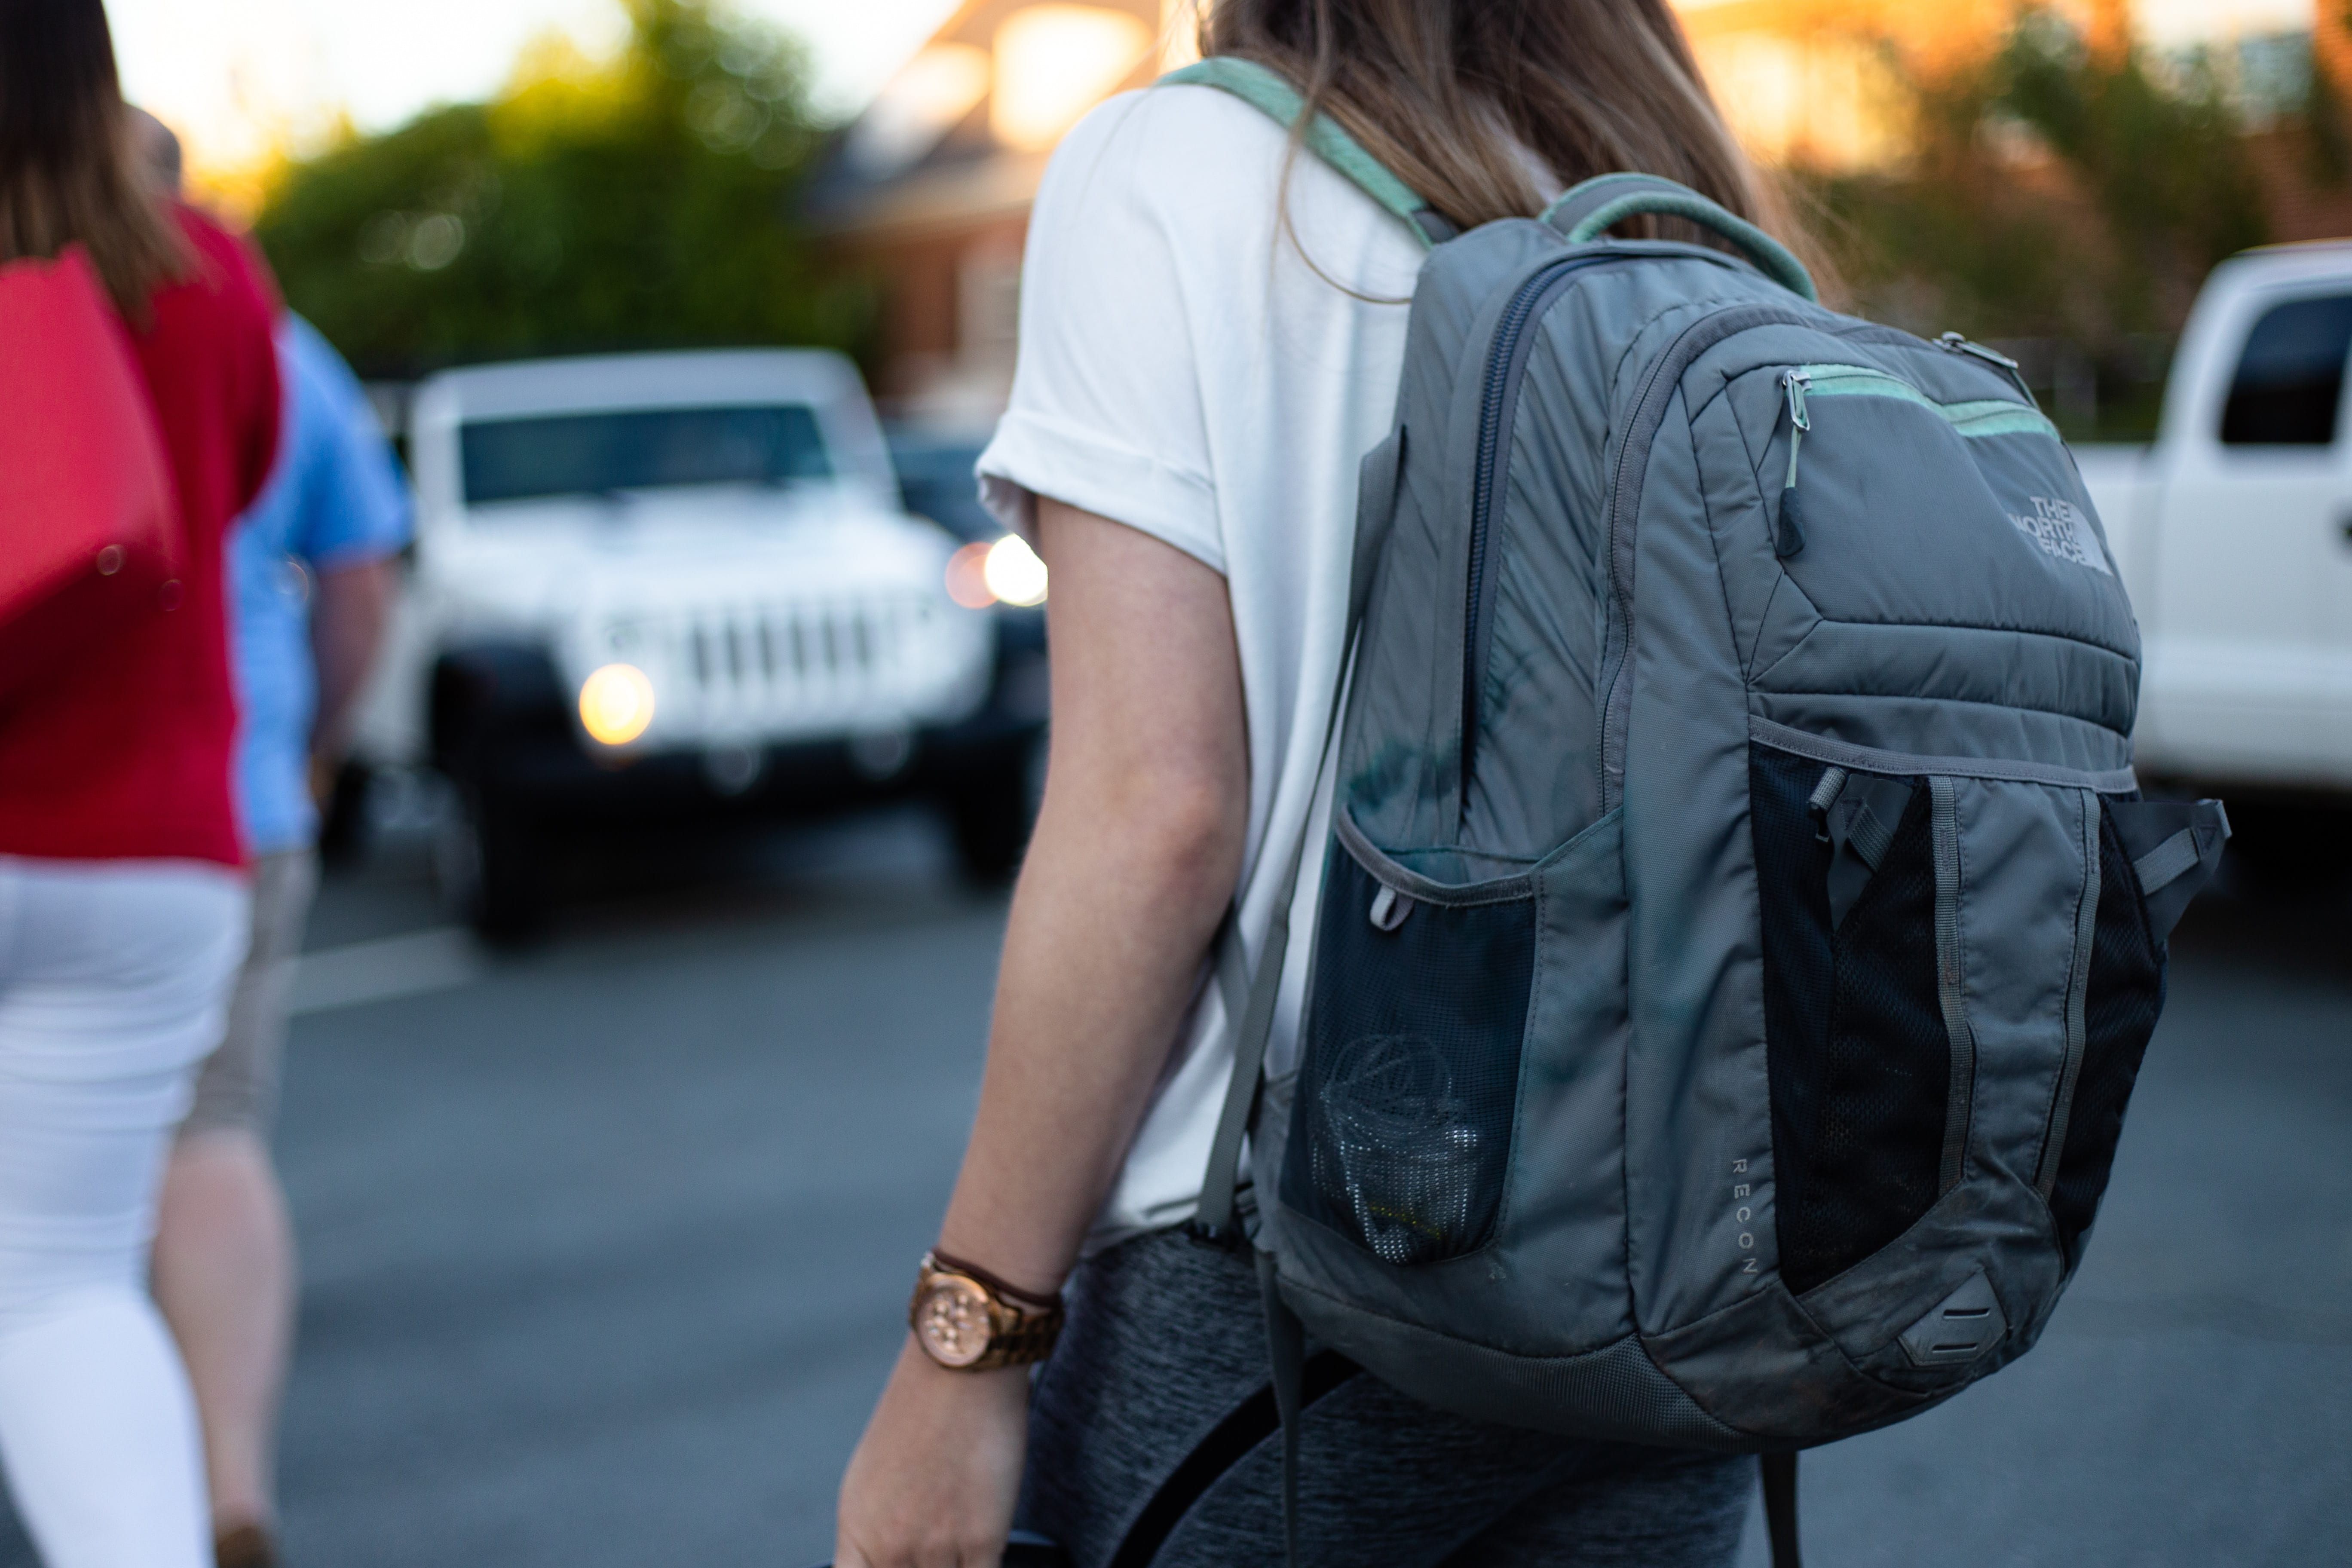 Bostelman Automotive Group to give away 650 backpacks with school supplies